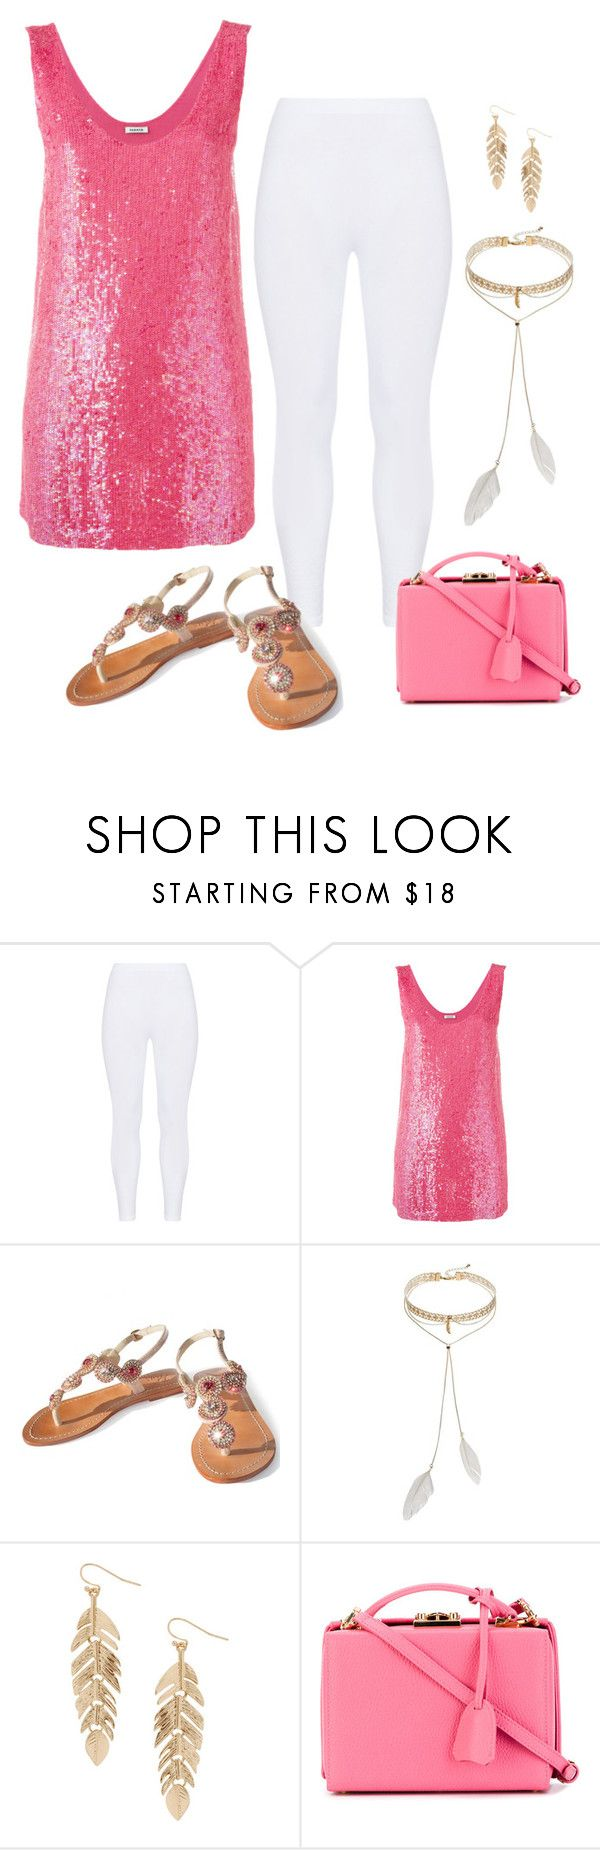 """Sparkly Pink"" by alara-cary on Polyvore featuring Gozzip, P.A.R.O.S.H., Bølo, Humble Chic and Mark Cross"